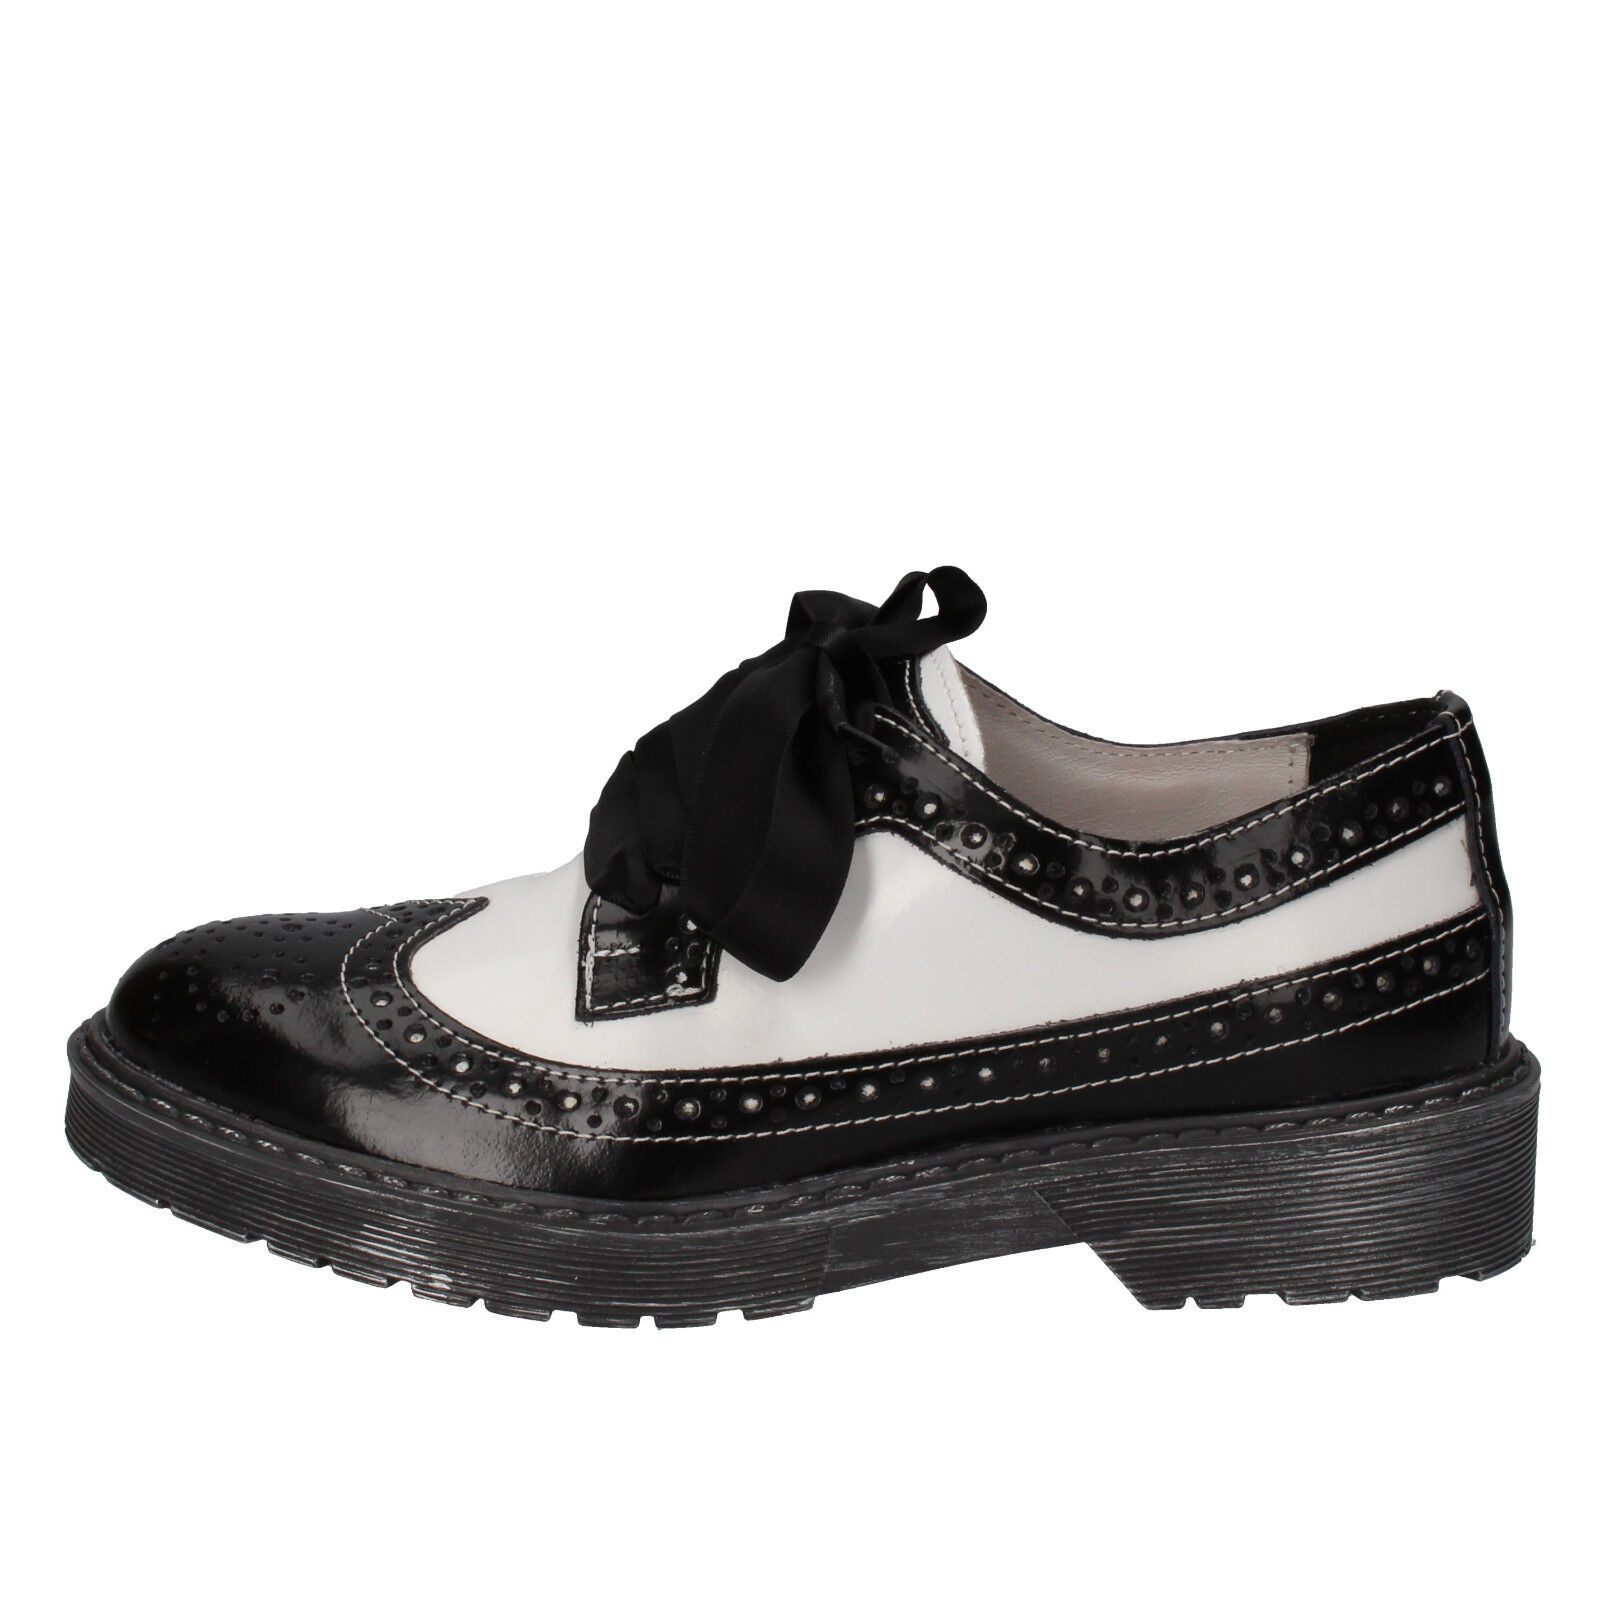 Scarpe donna BEVERLY 39 HILLS POLO CLUB 39 BEVERLY classica bianco nero pelle AE930-E 5ef210